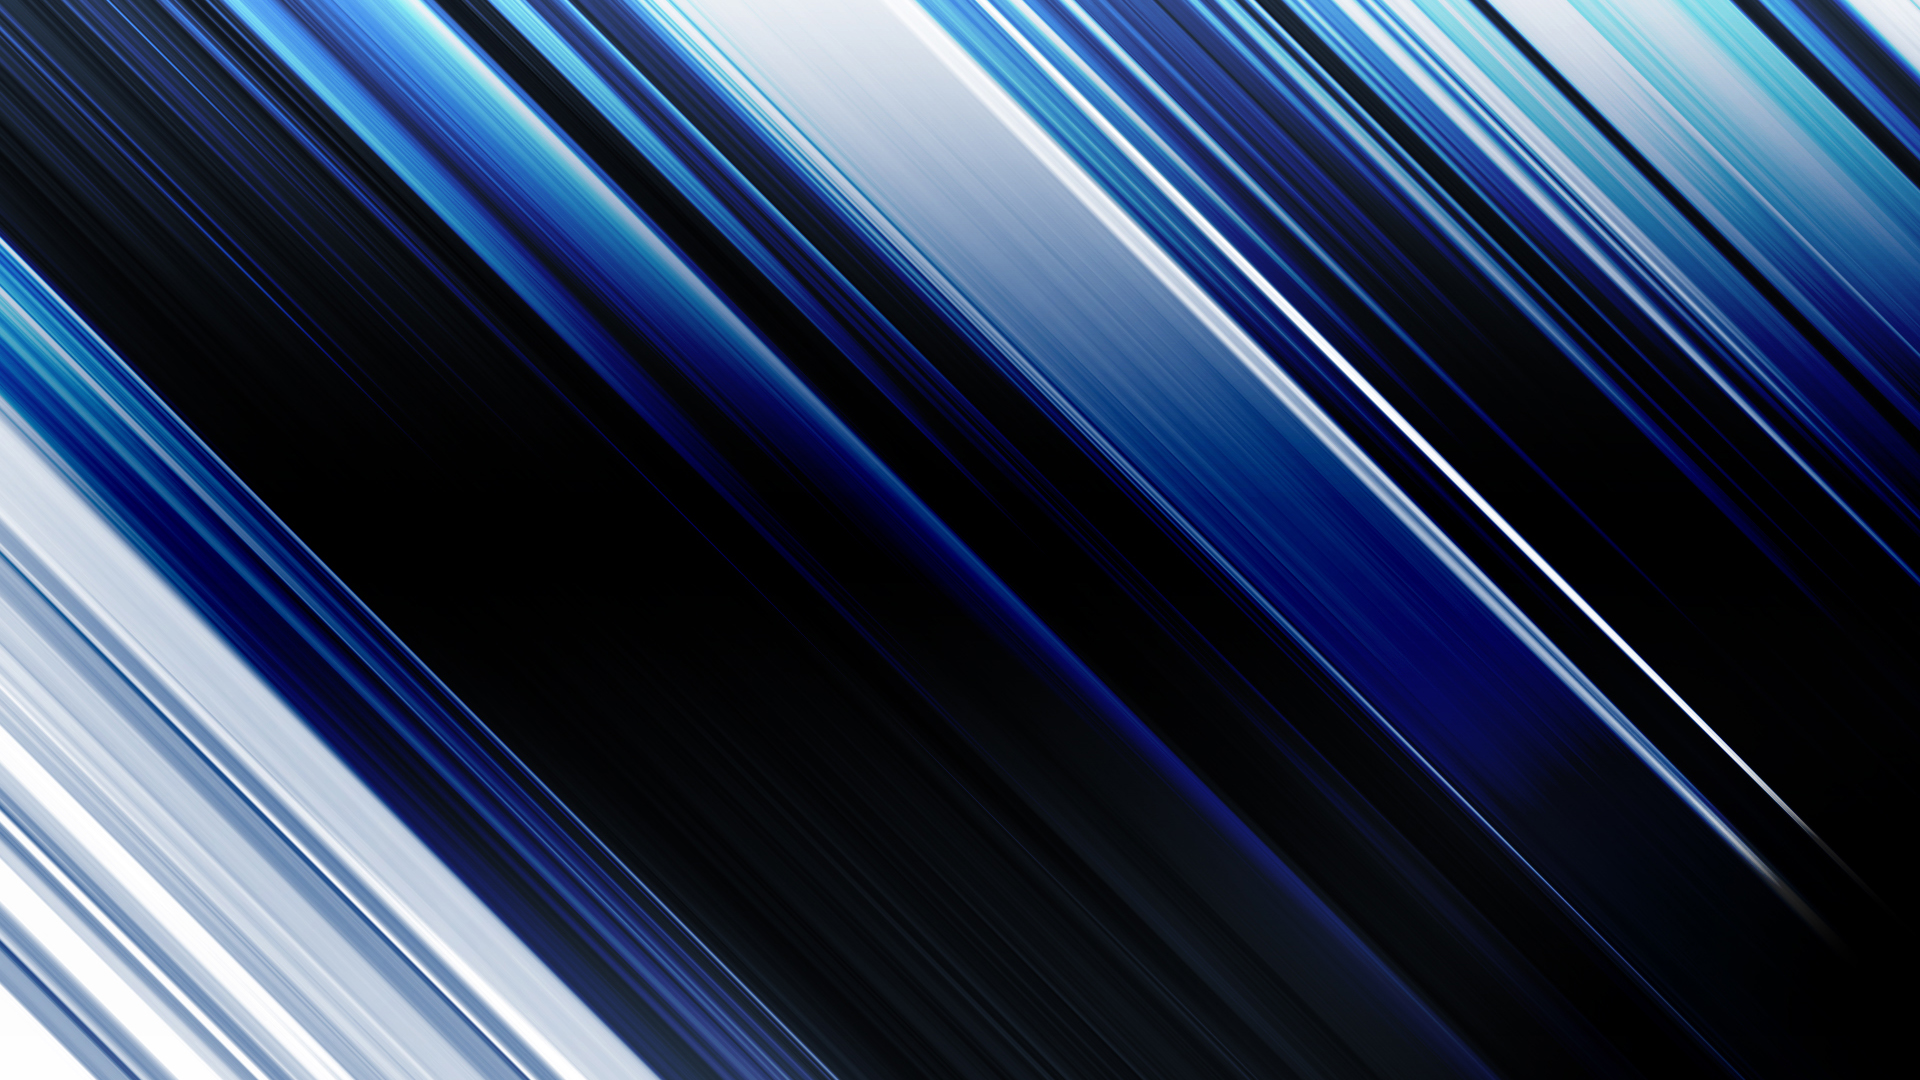 Download Abstract Blue Motion Blur Line Wallpaper 1920x1080 | Full